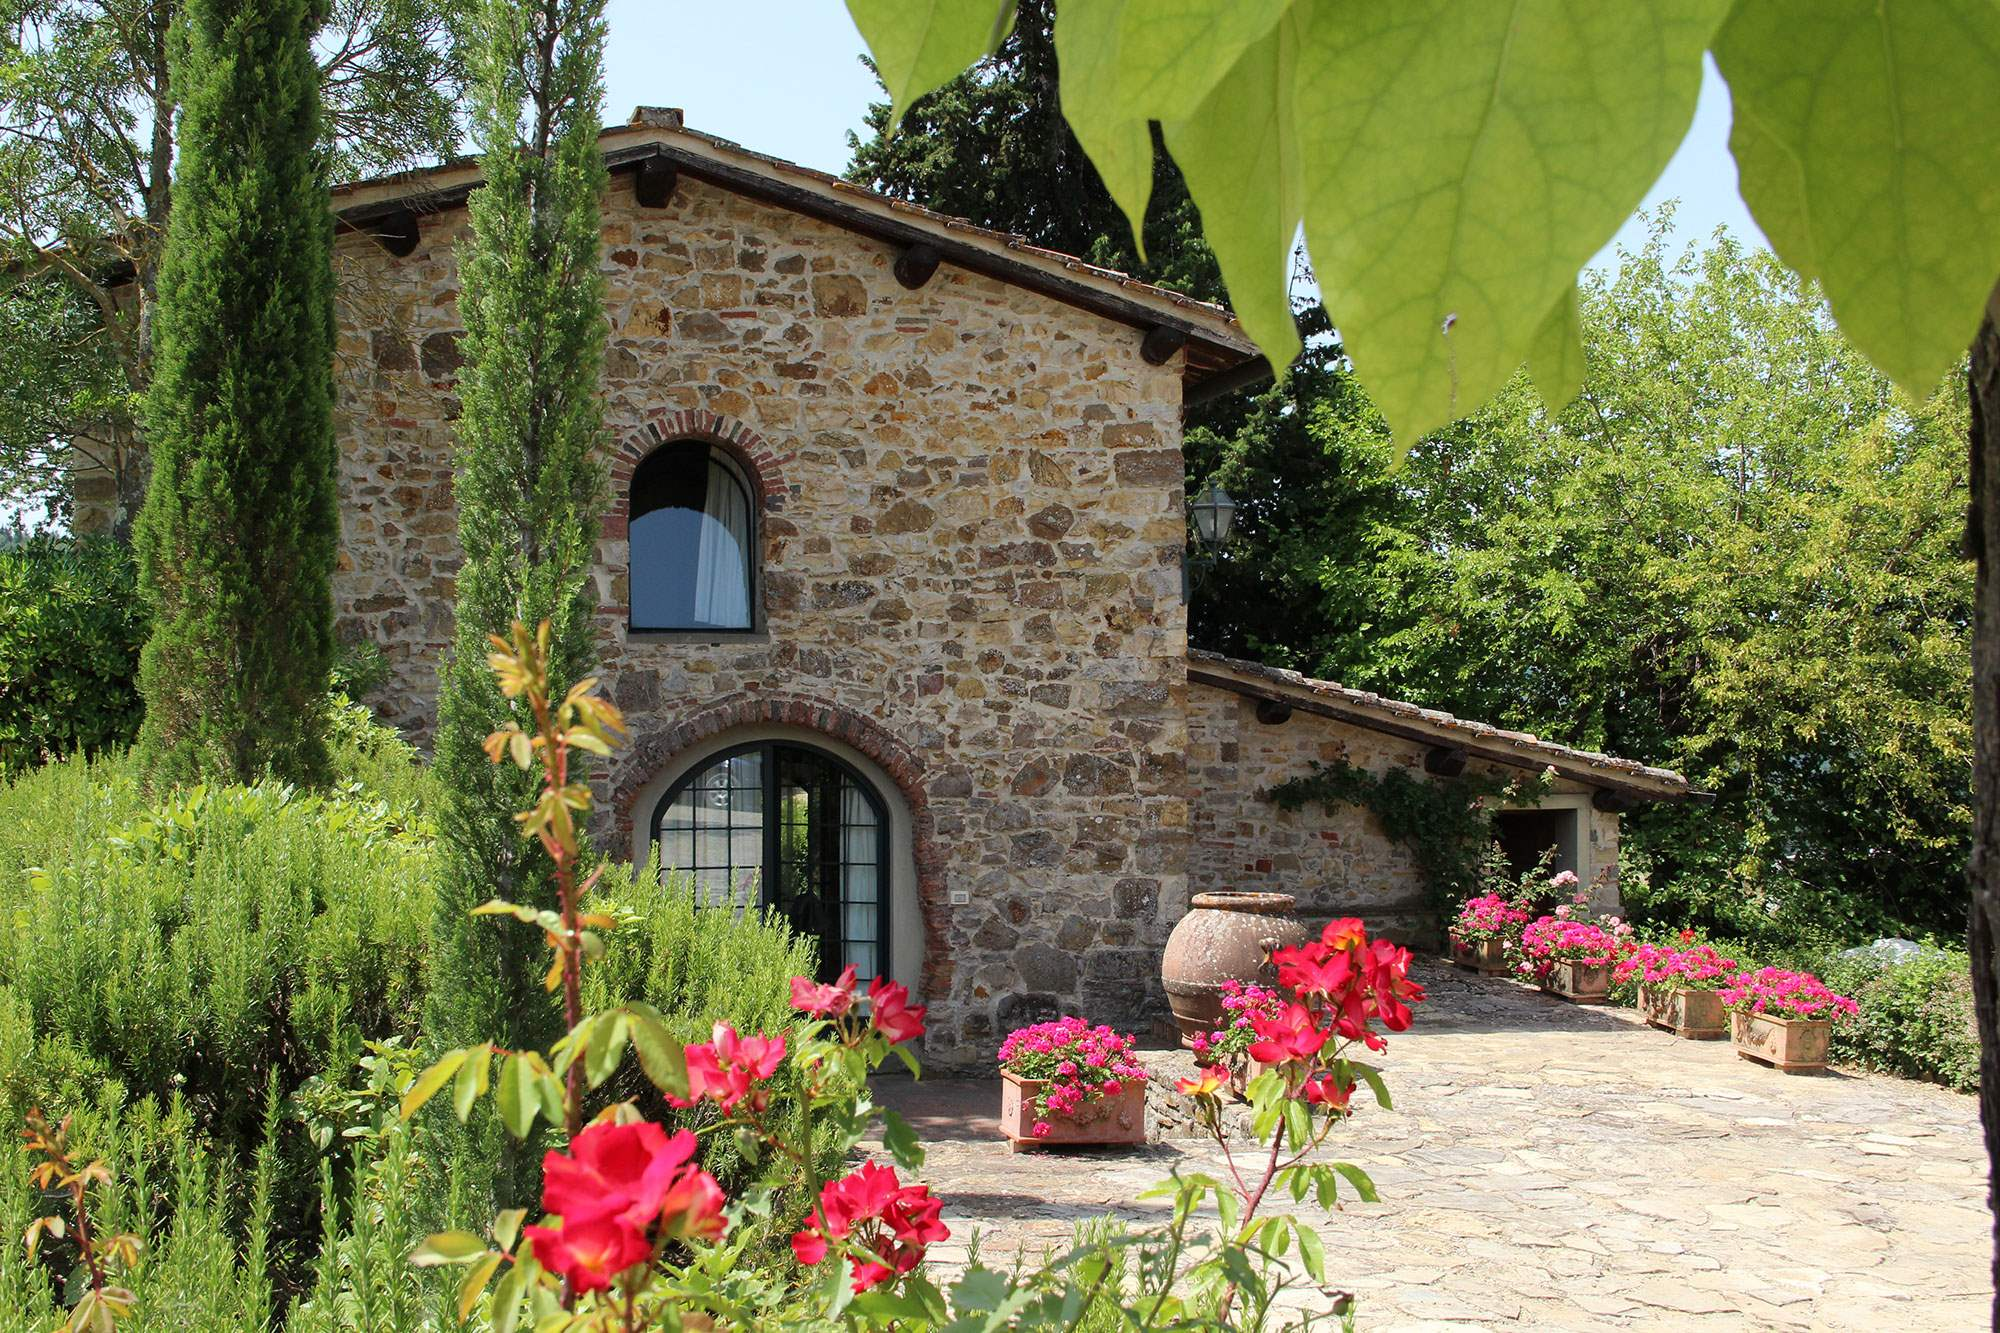 Casas Ferruzzi, 8 bedroom apartment in Chianti & Countryside, Tuscany Photo #10